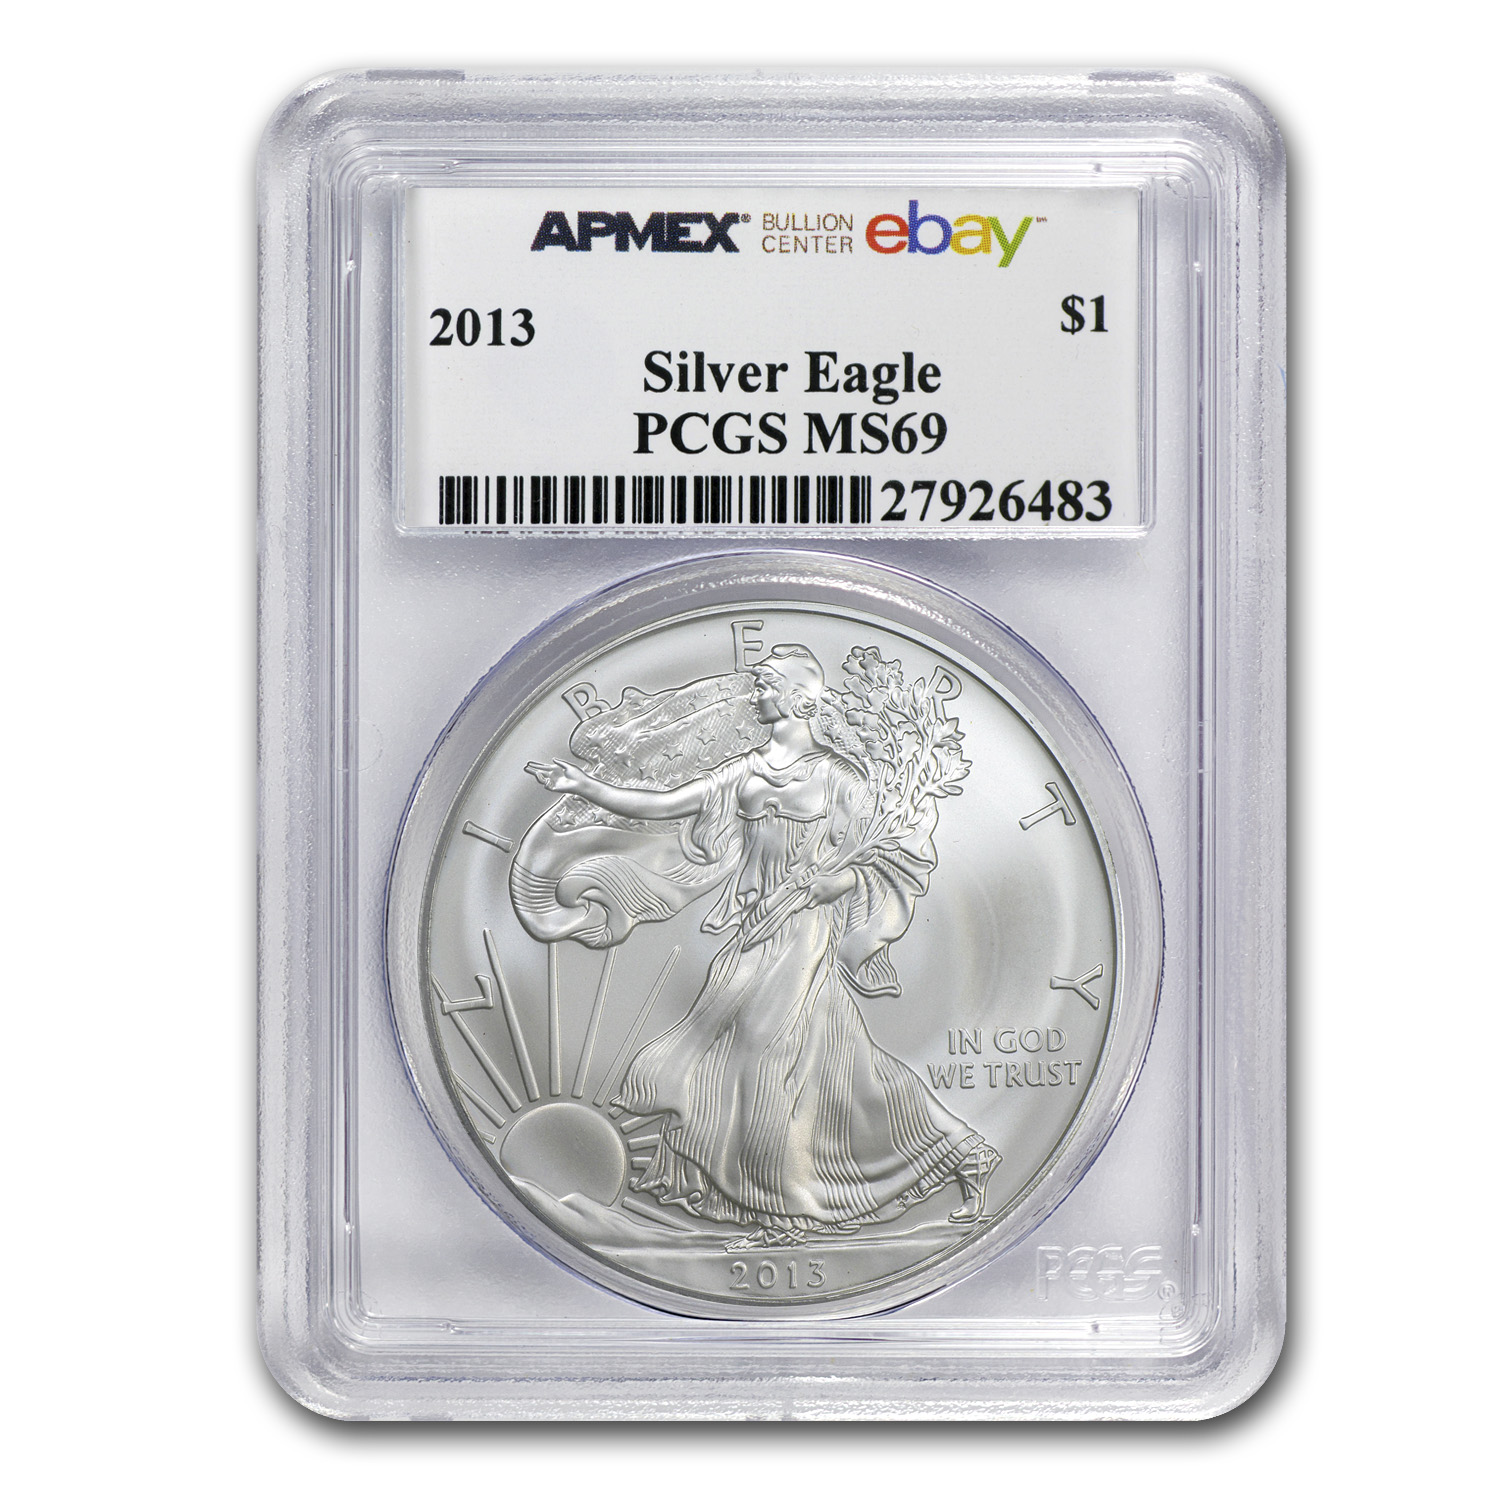 2013 Silver American Eagle MS-69 PCGS eBay Bullion Center